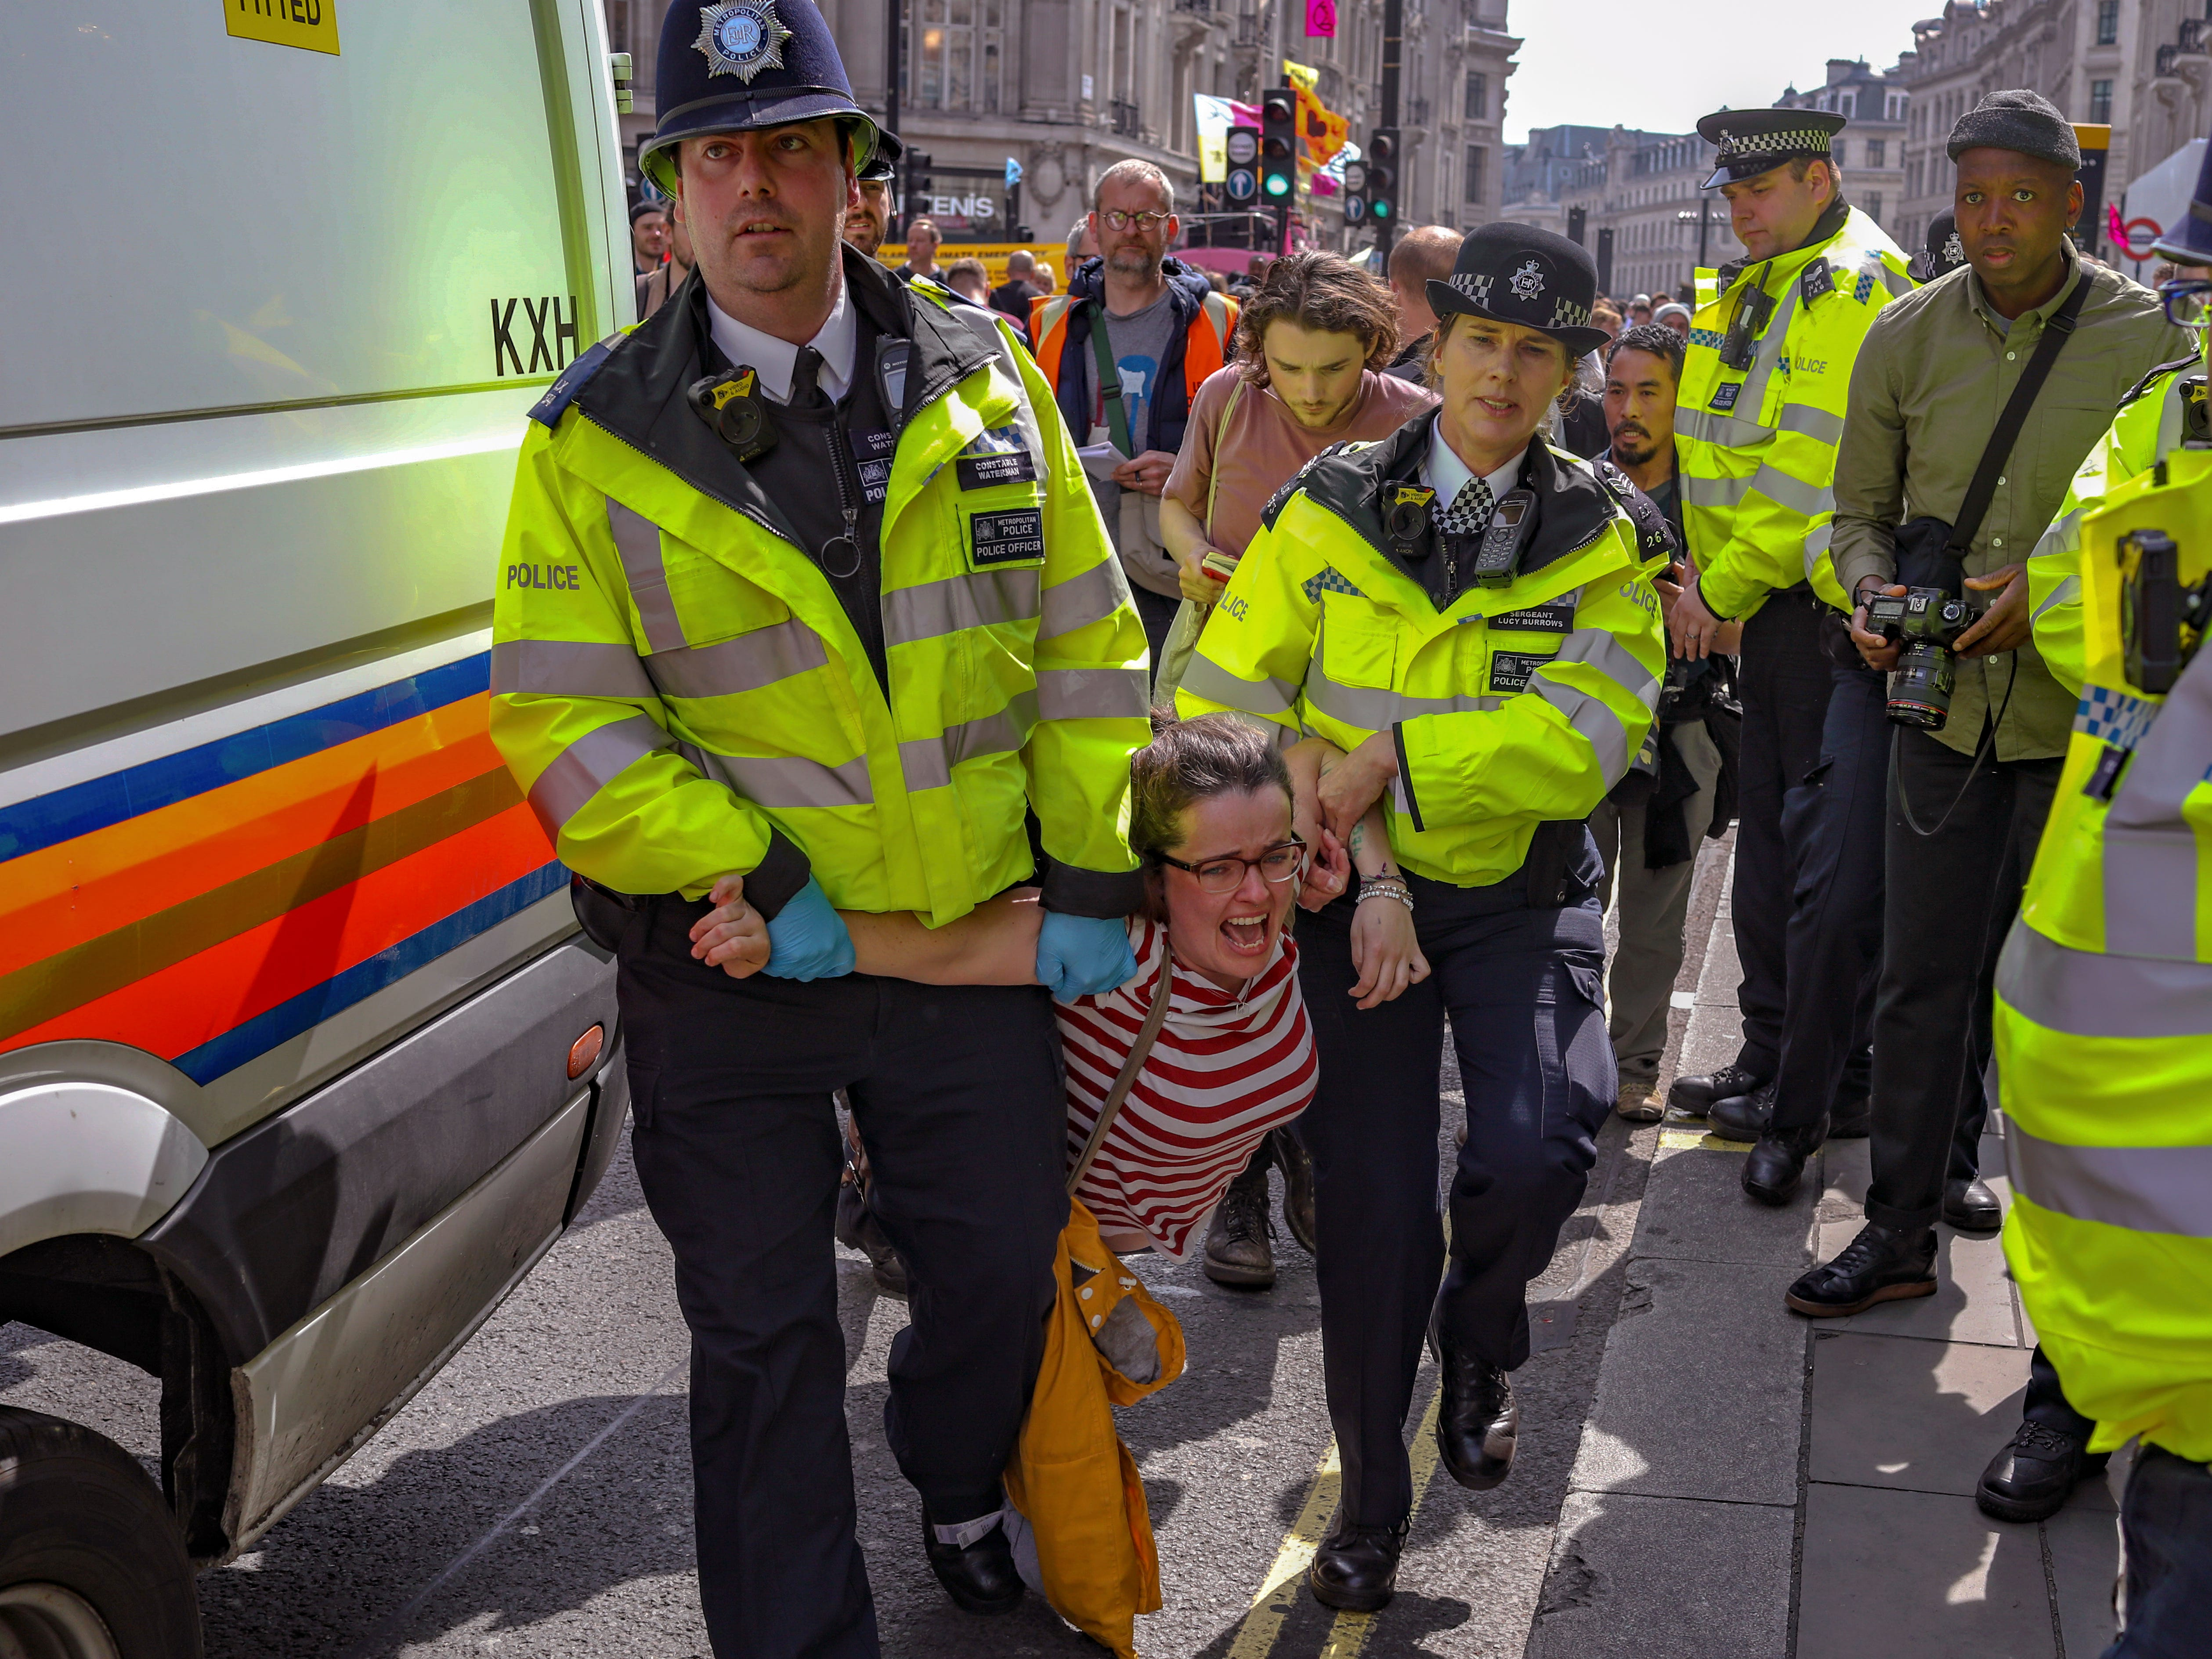 Police arrest protesters as they block traffic on London's Oxford Circus, Thursday, April 18, 2019. The group Extinction Rebellion is calling for a week of civil disobedience against what it says is the failure to tackle the causes of climate change.